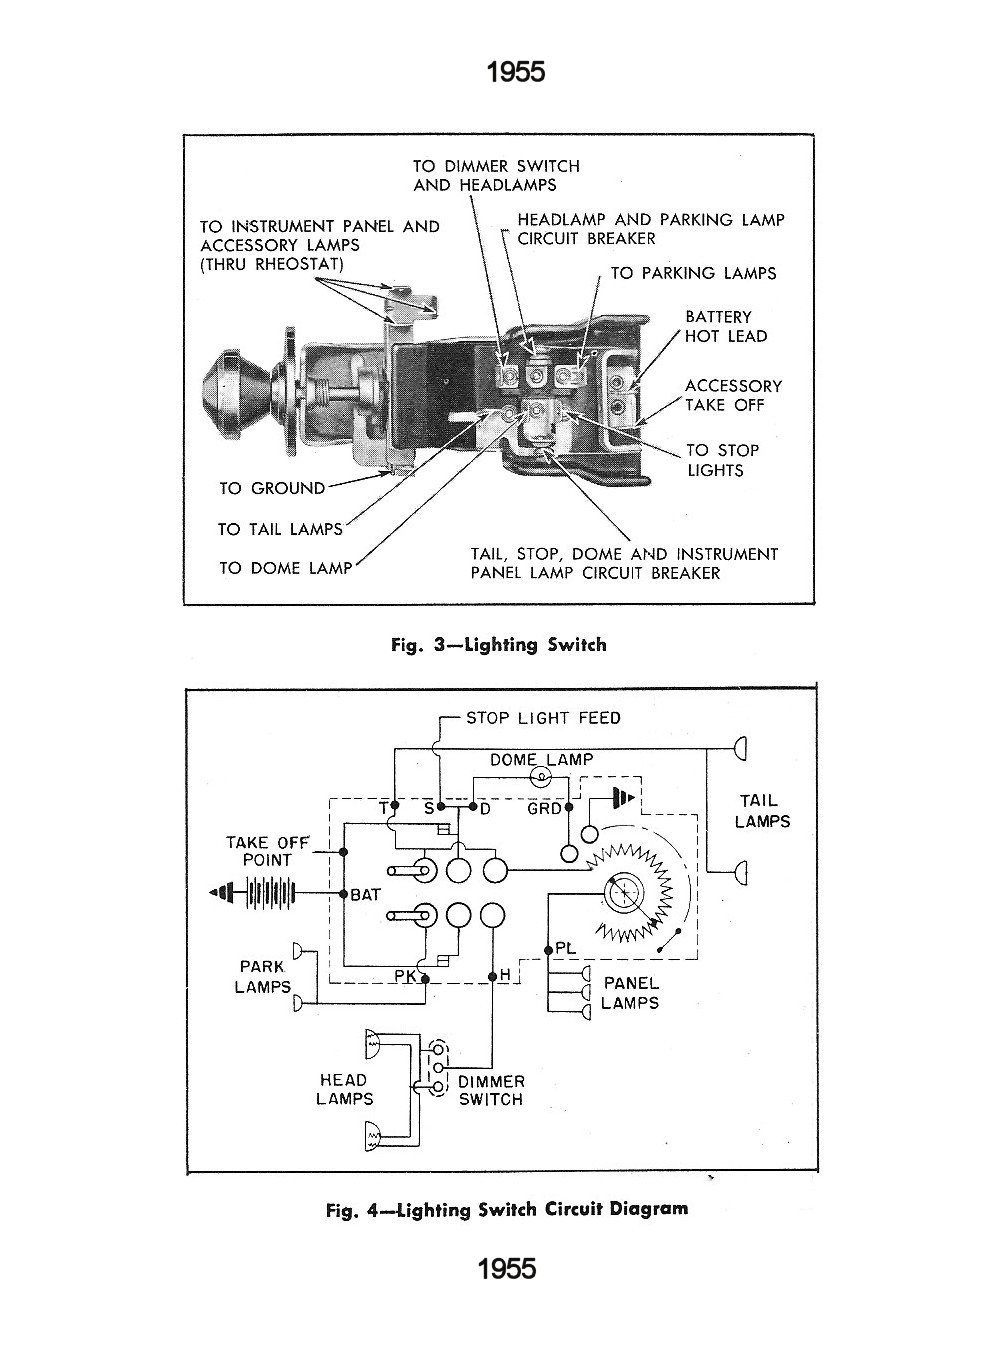 55csm1204a 1955 chevy wiring diagram 1955 pontiac wiring diagram \u2022 free chevrolet headlight switch wiring diagram at cos-gaming.co